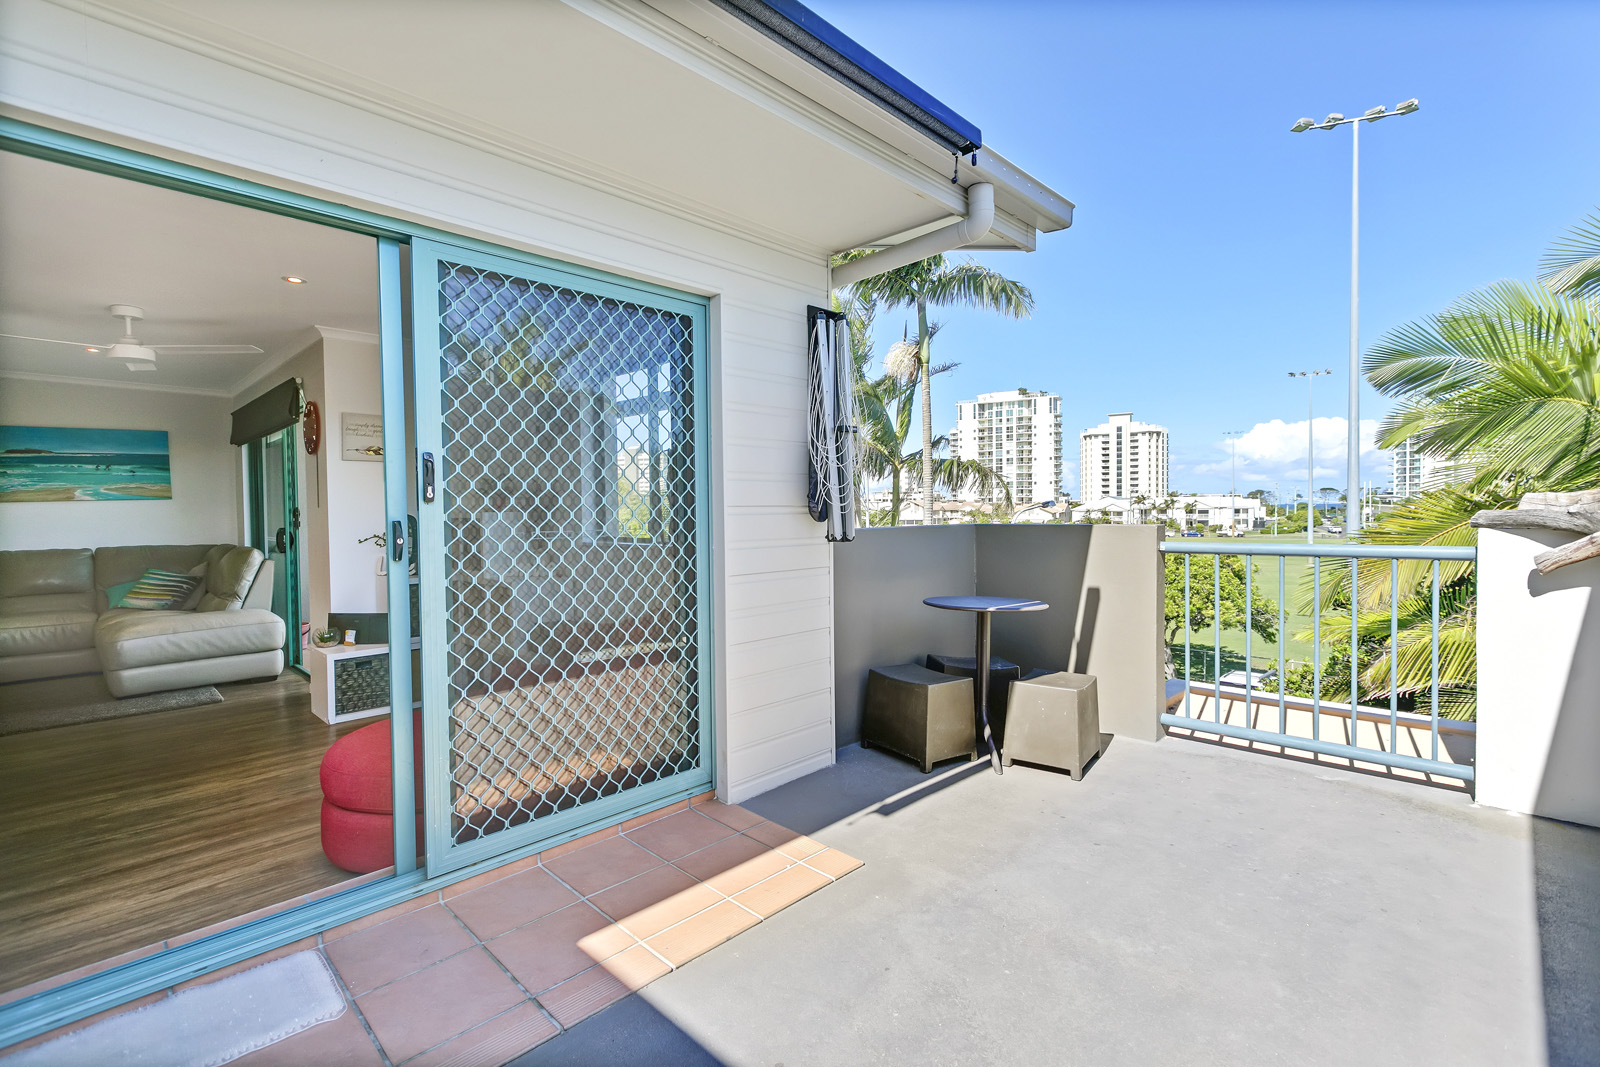 14/44 Fourth Ave COTTON TREE